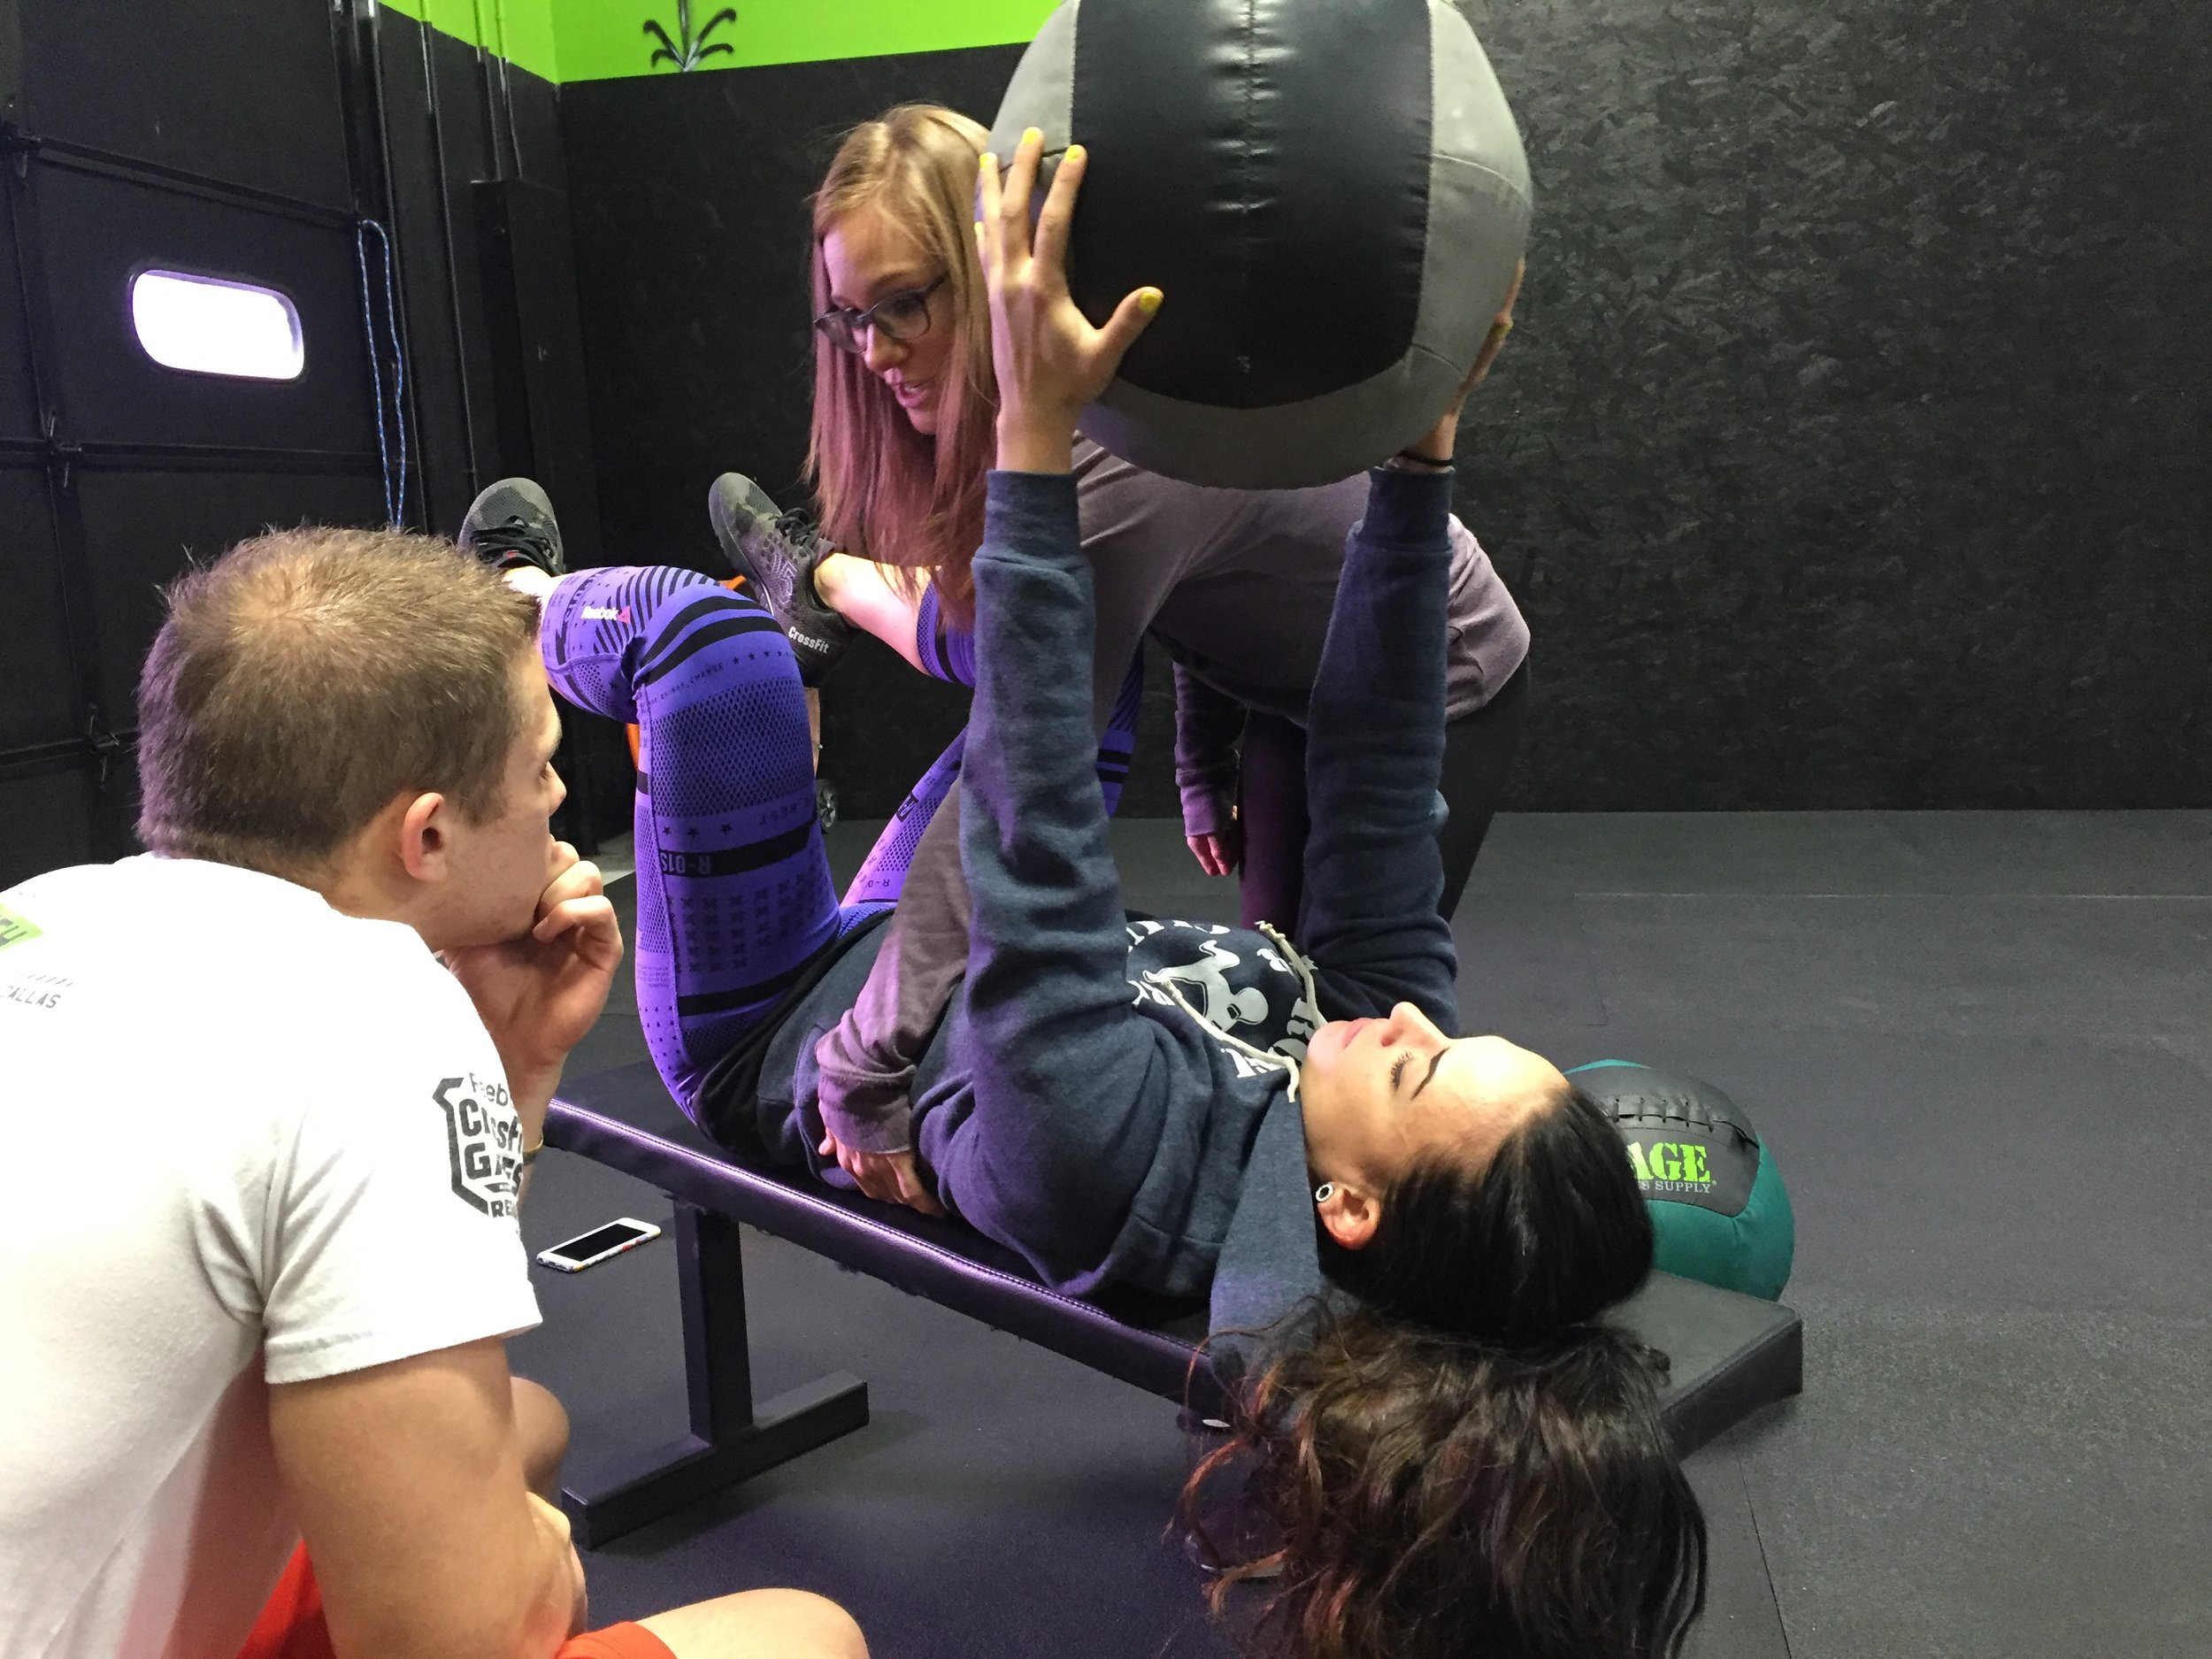 Teaching the basics of  Dynamic Neuromuscular Stabilization  - an approach that reestablishes ideal motor patterns from our developmental movement road map.